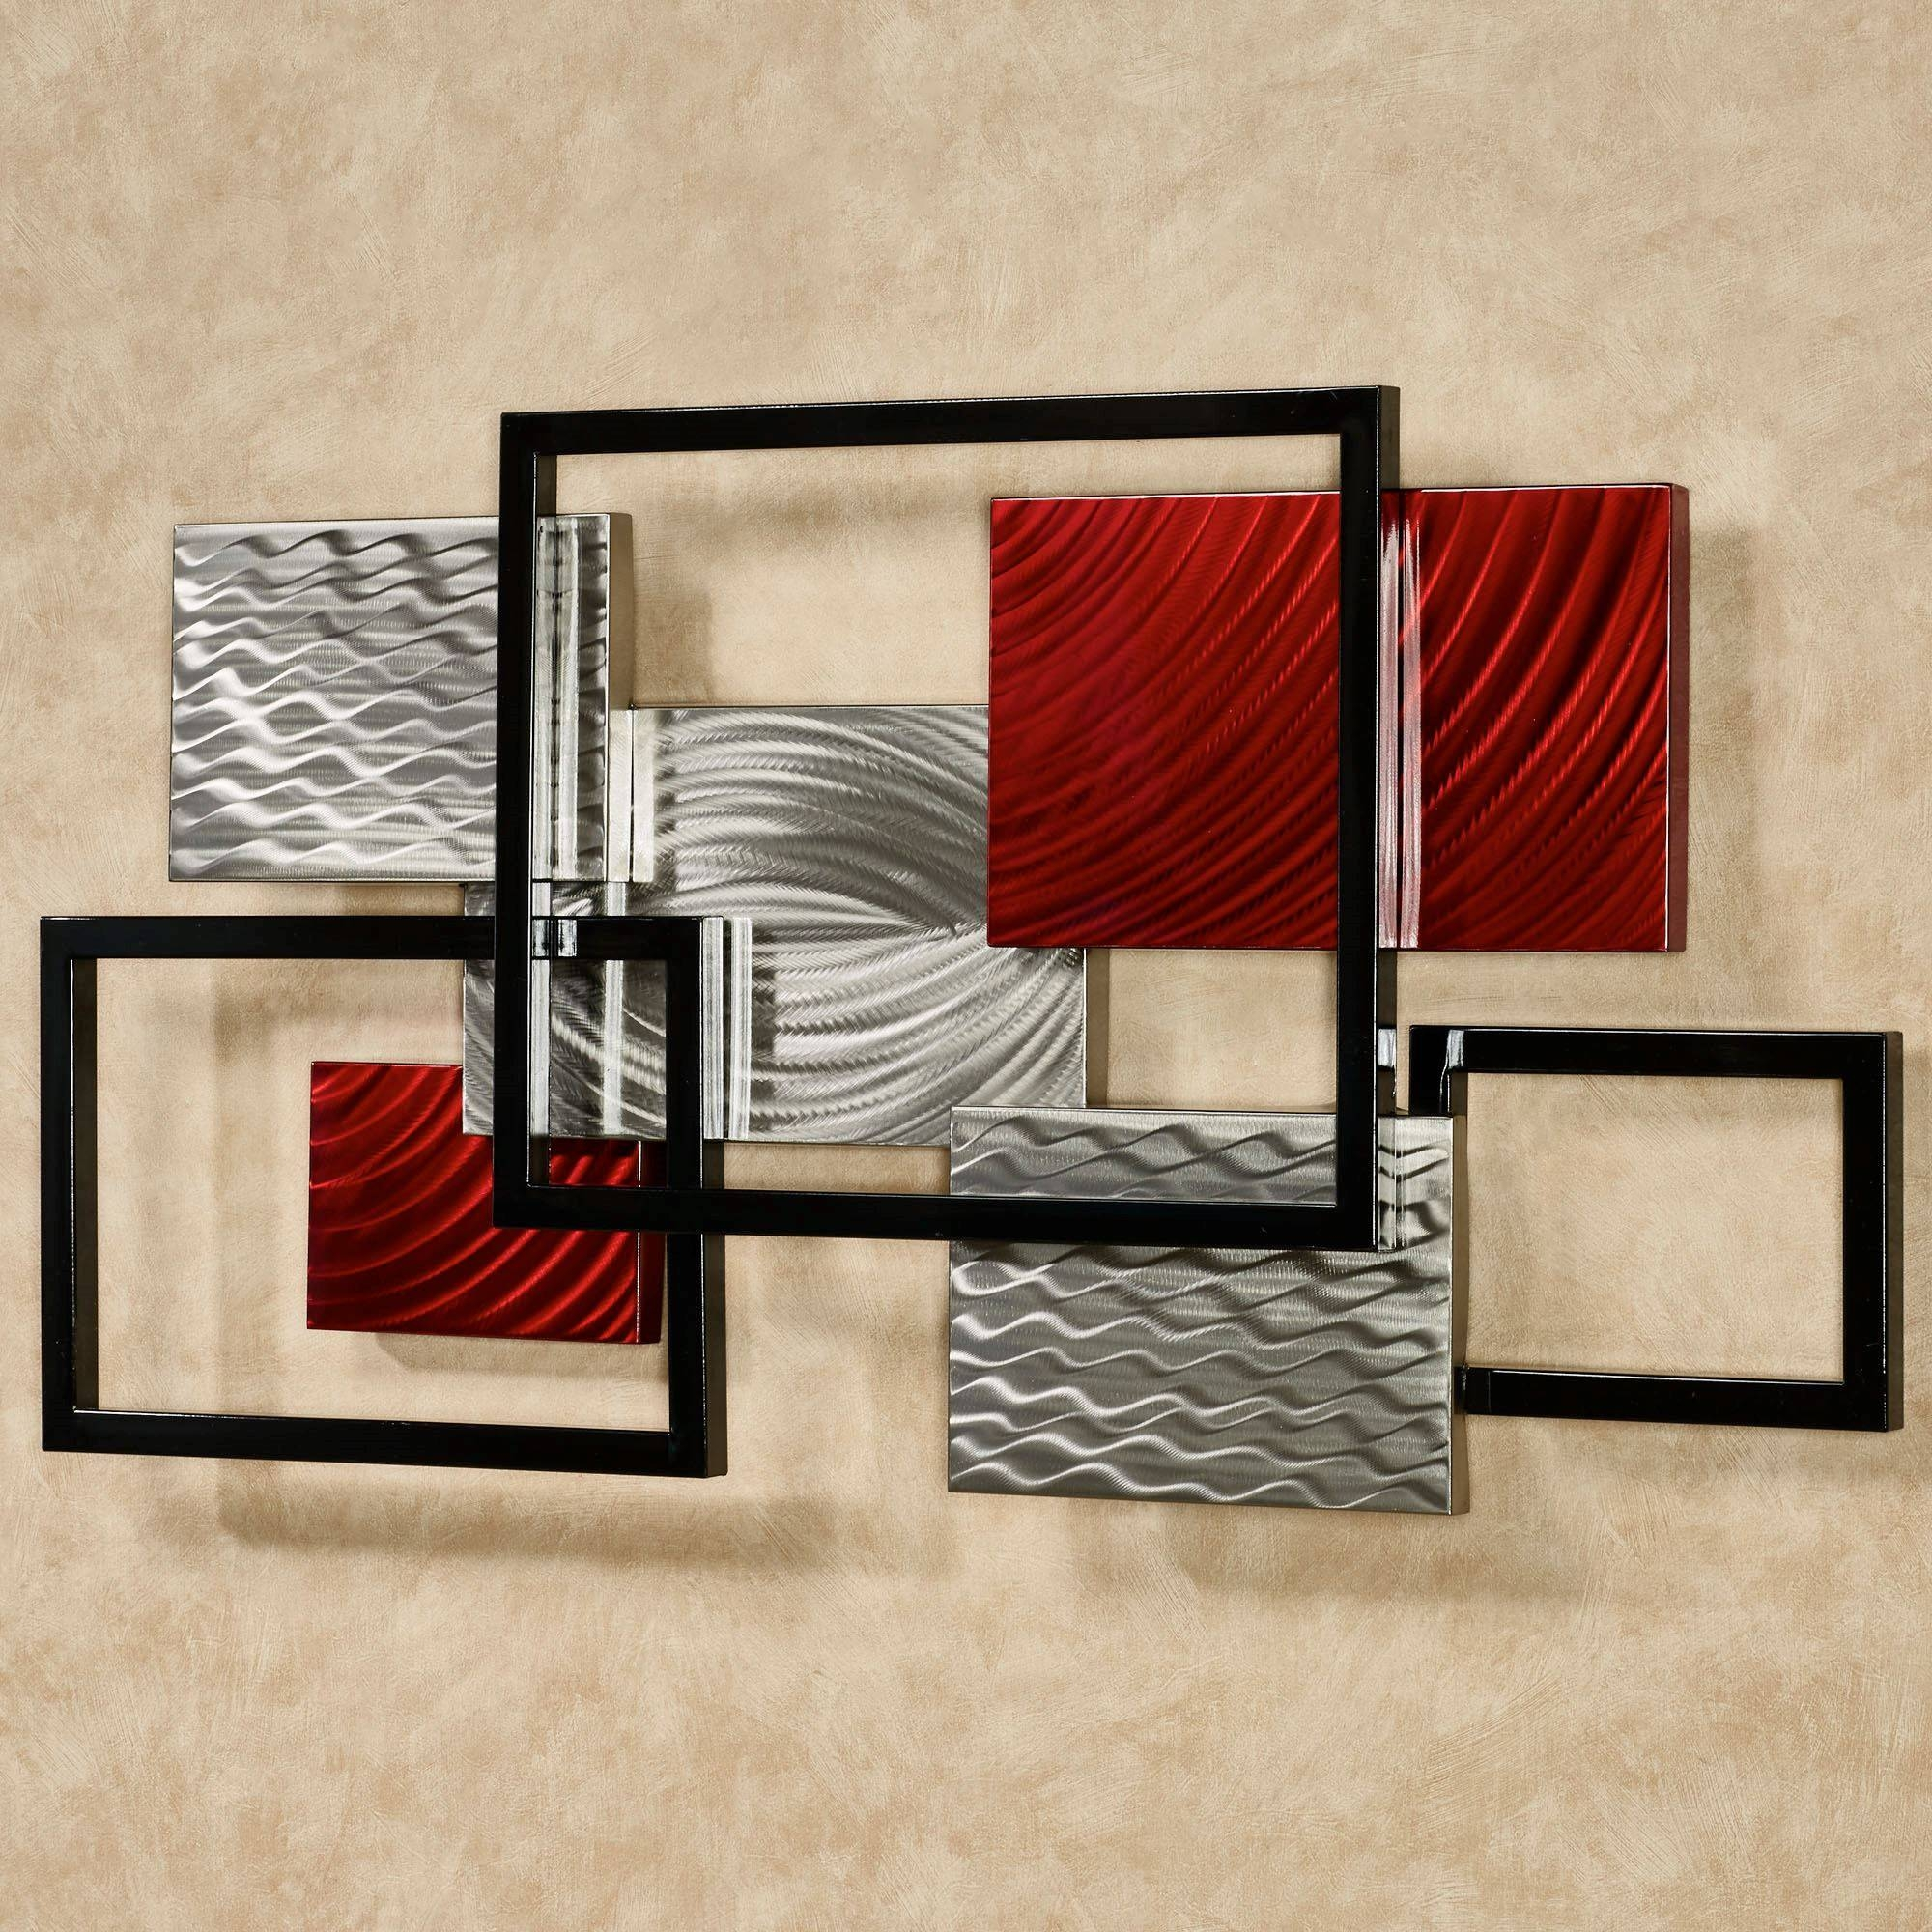 Framed Array Indoor Outdoor Abstract Metal Wall Sculpture Throughout Most Popular Contemporary Metal Wall Art (Gallery 2 of 20)